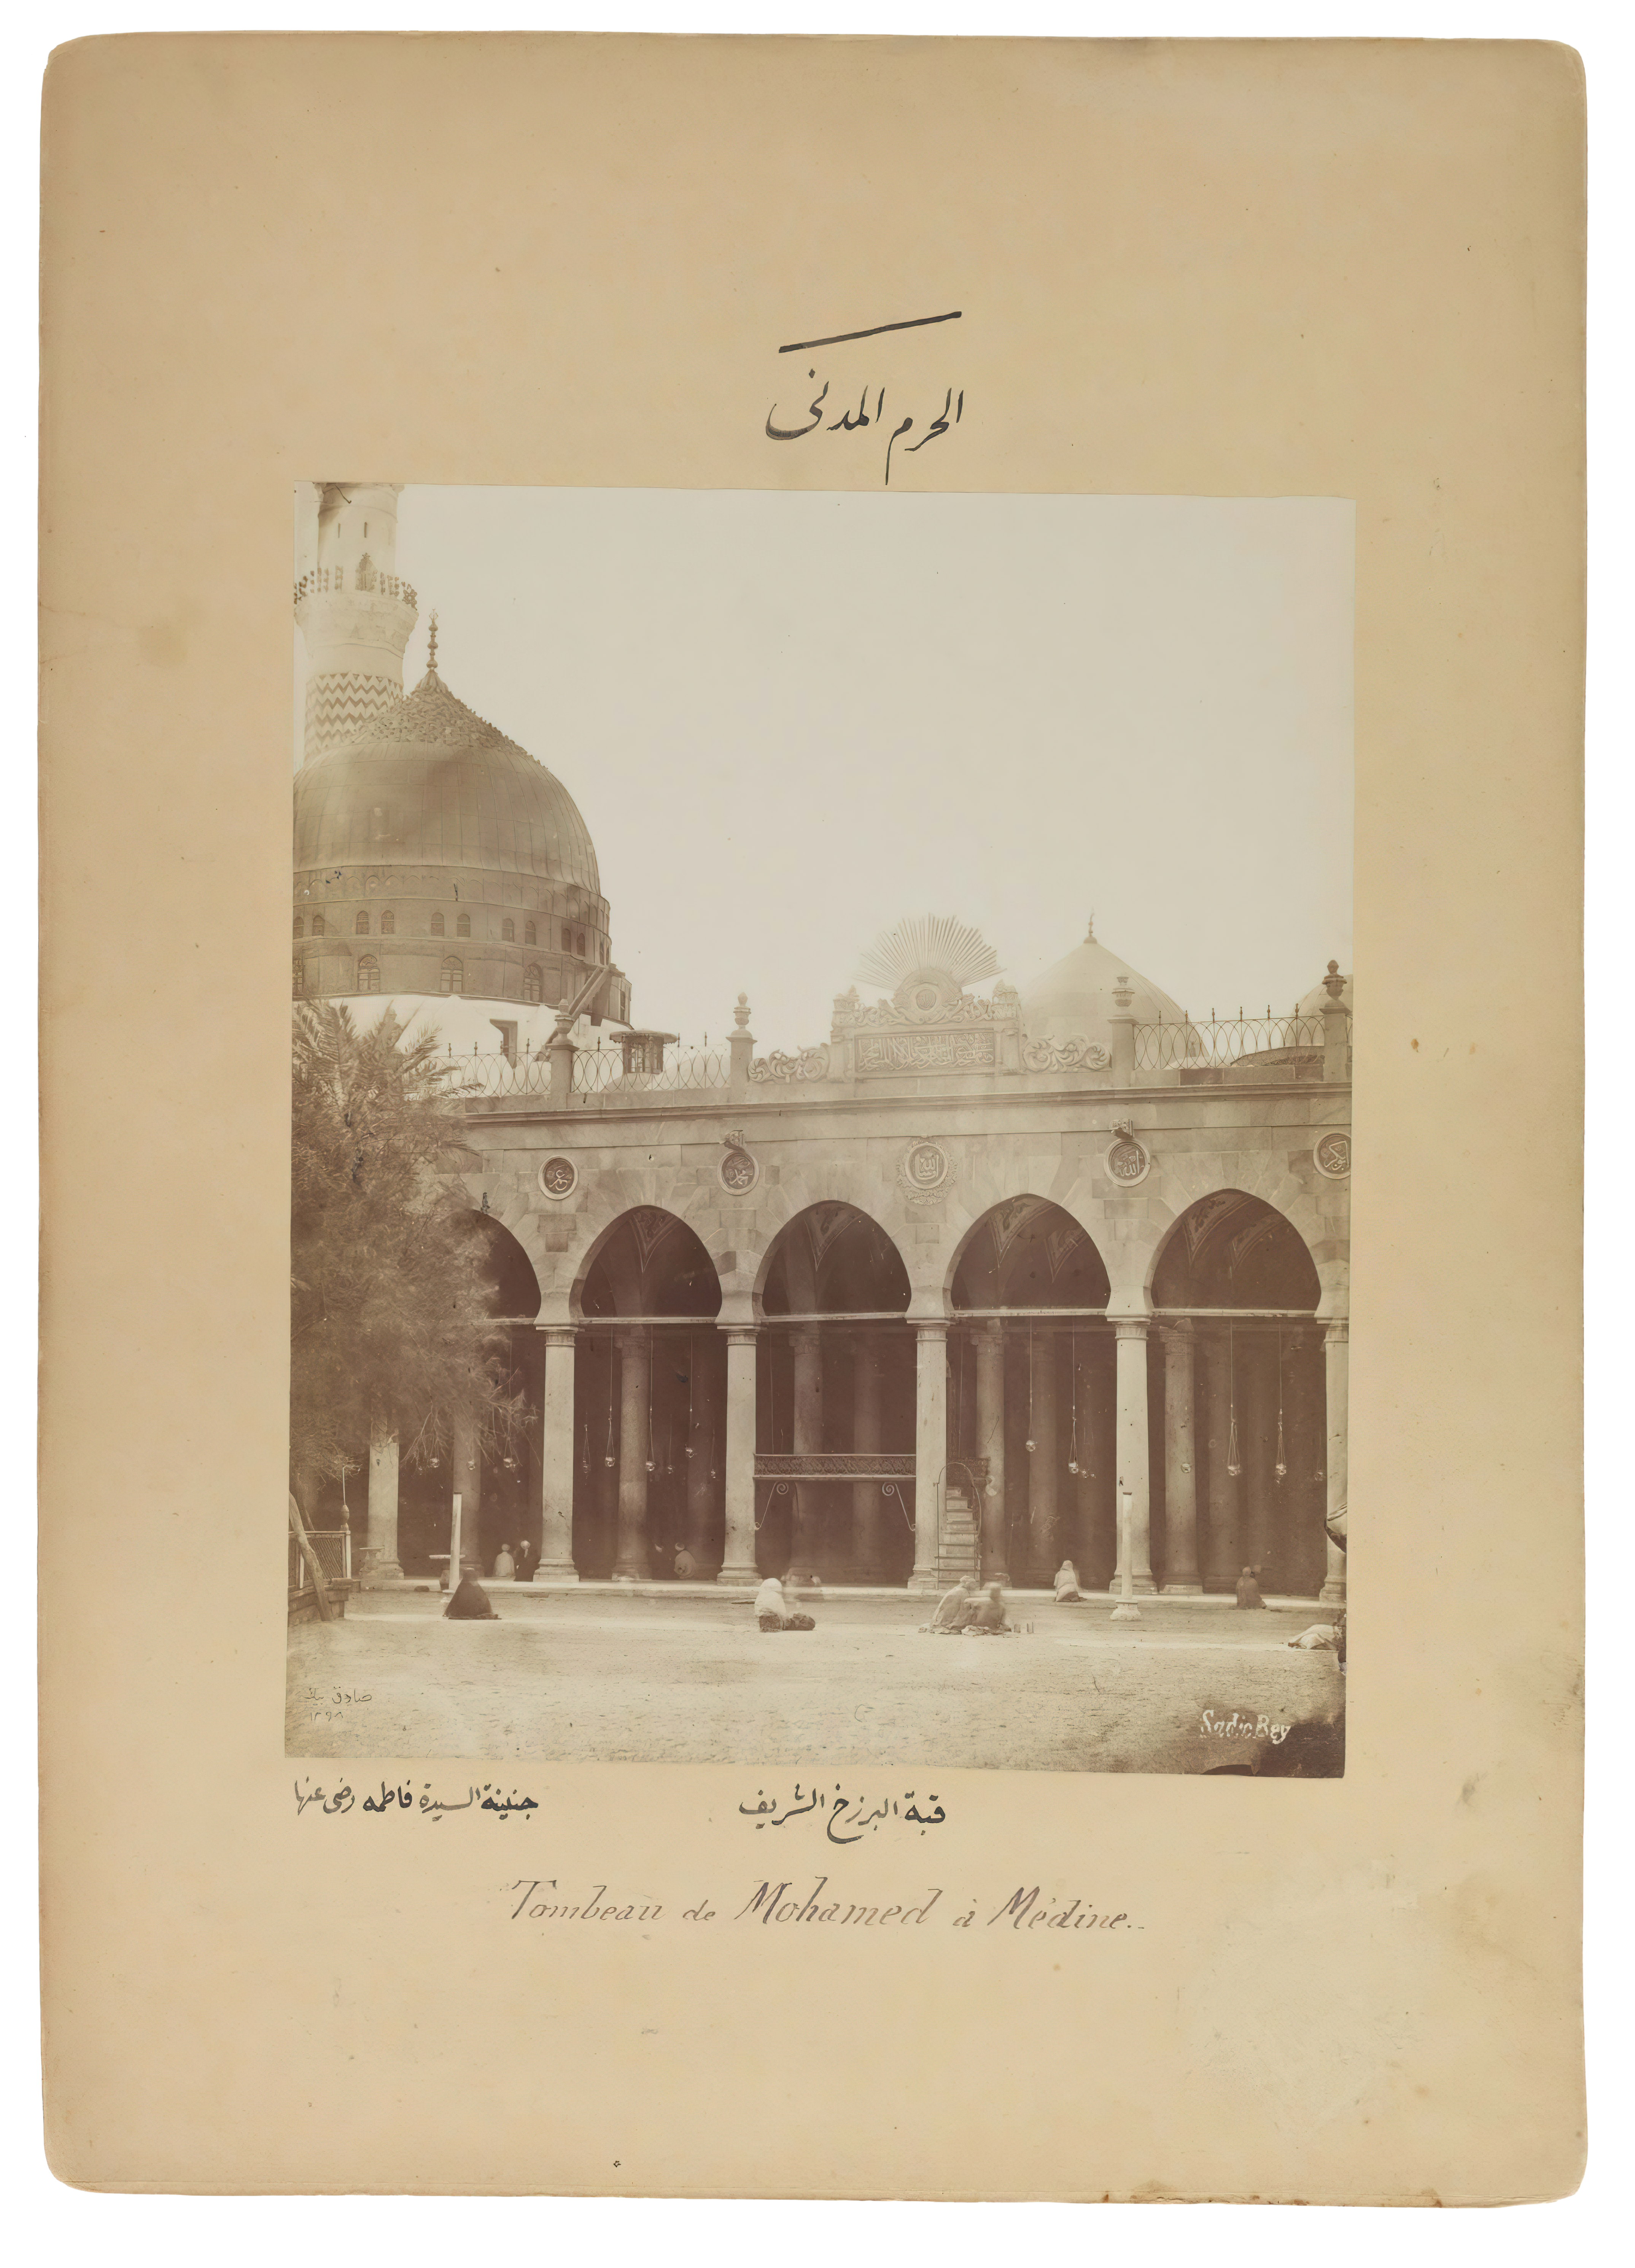 The sanctuary at Medina by Sadiq Bey, the first photographer of Mecca and Medina